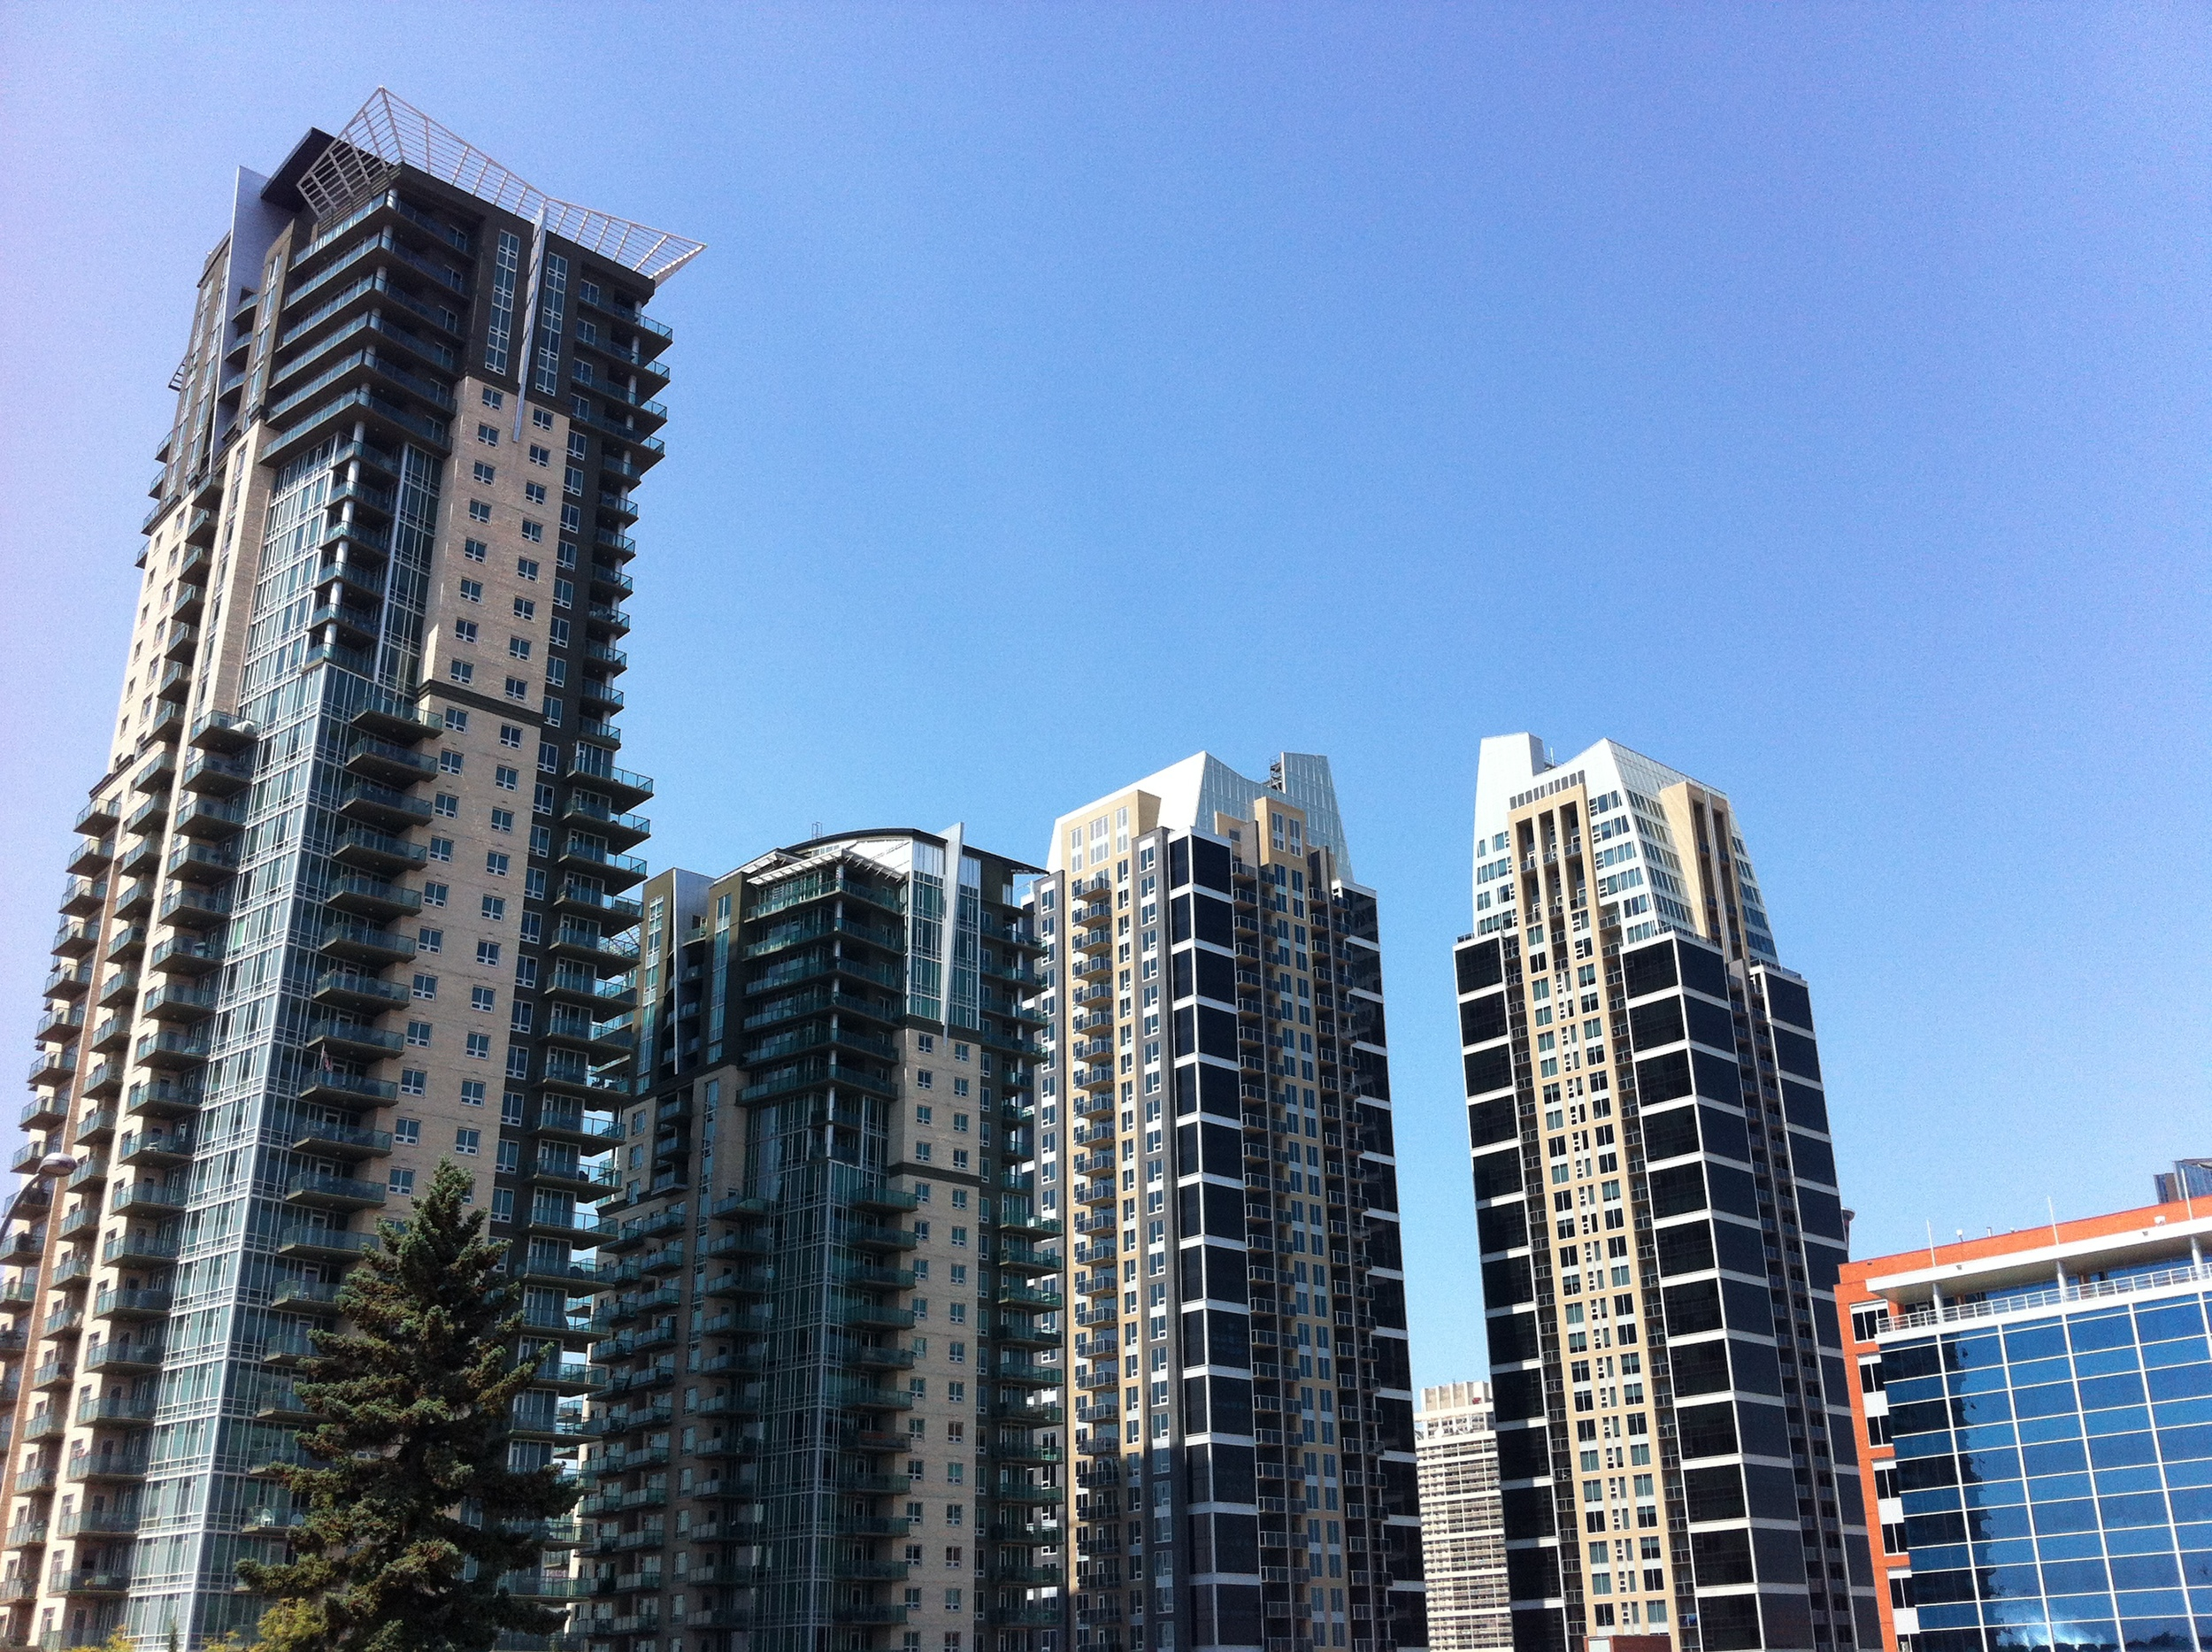 These four condo towers are located near Stampede Park on Macleod Trail, in Victoria Park one of Calgary's oldest communities are called Sasso, Vetro, Nuera and Alura. What a missed opportunity to preserve some of the community's rich history?